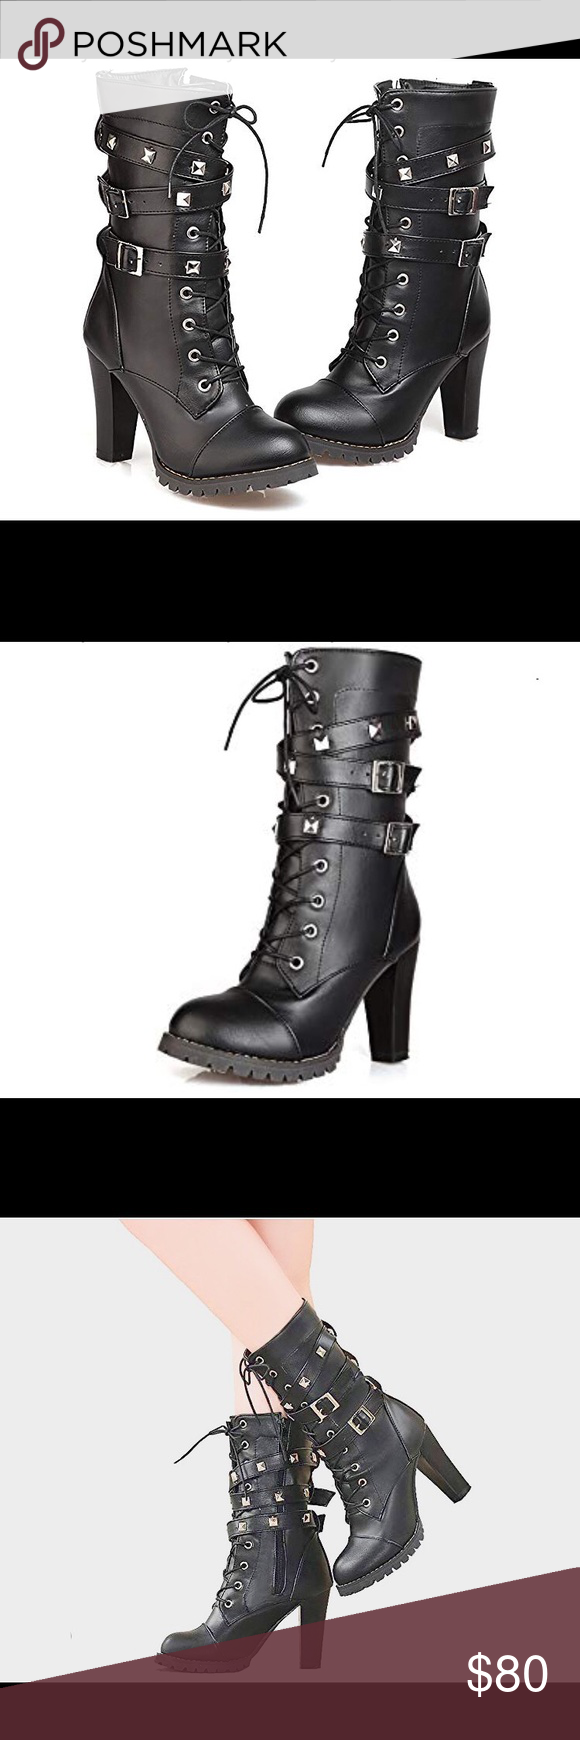 0831 Women's Mid Calf Leather Boots High Women's Mid Calf Leather Boots High Heel Lace Up Military Buckle Motorcycle Cowboy Ankle Booties About this item  leather-and-rubber Manmade Antiskid and Durable Soft Leather High Quality,Fashionable & Comfortable high heels / mid-calf / round-toe Heel Height:3.5